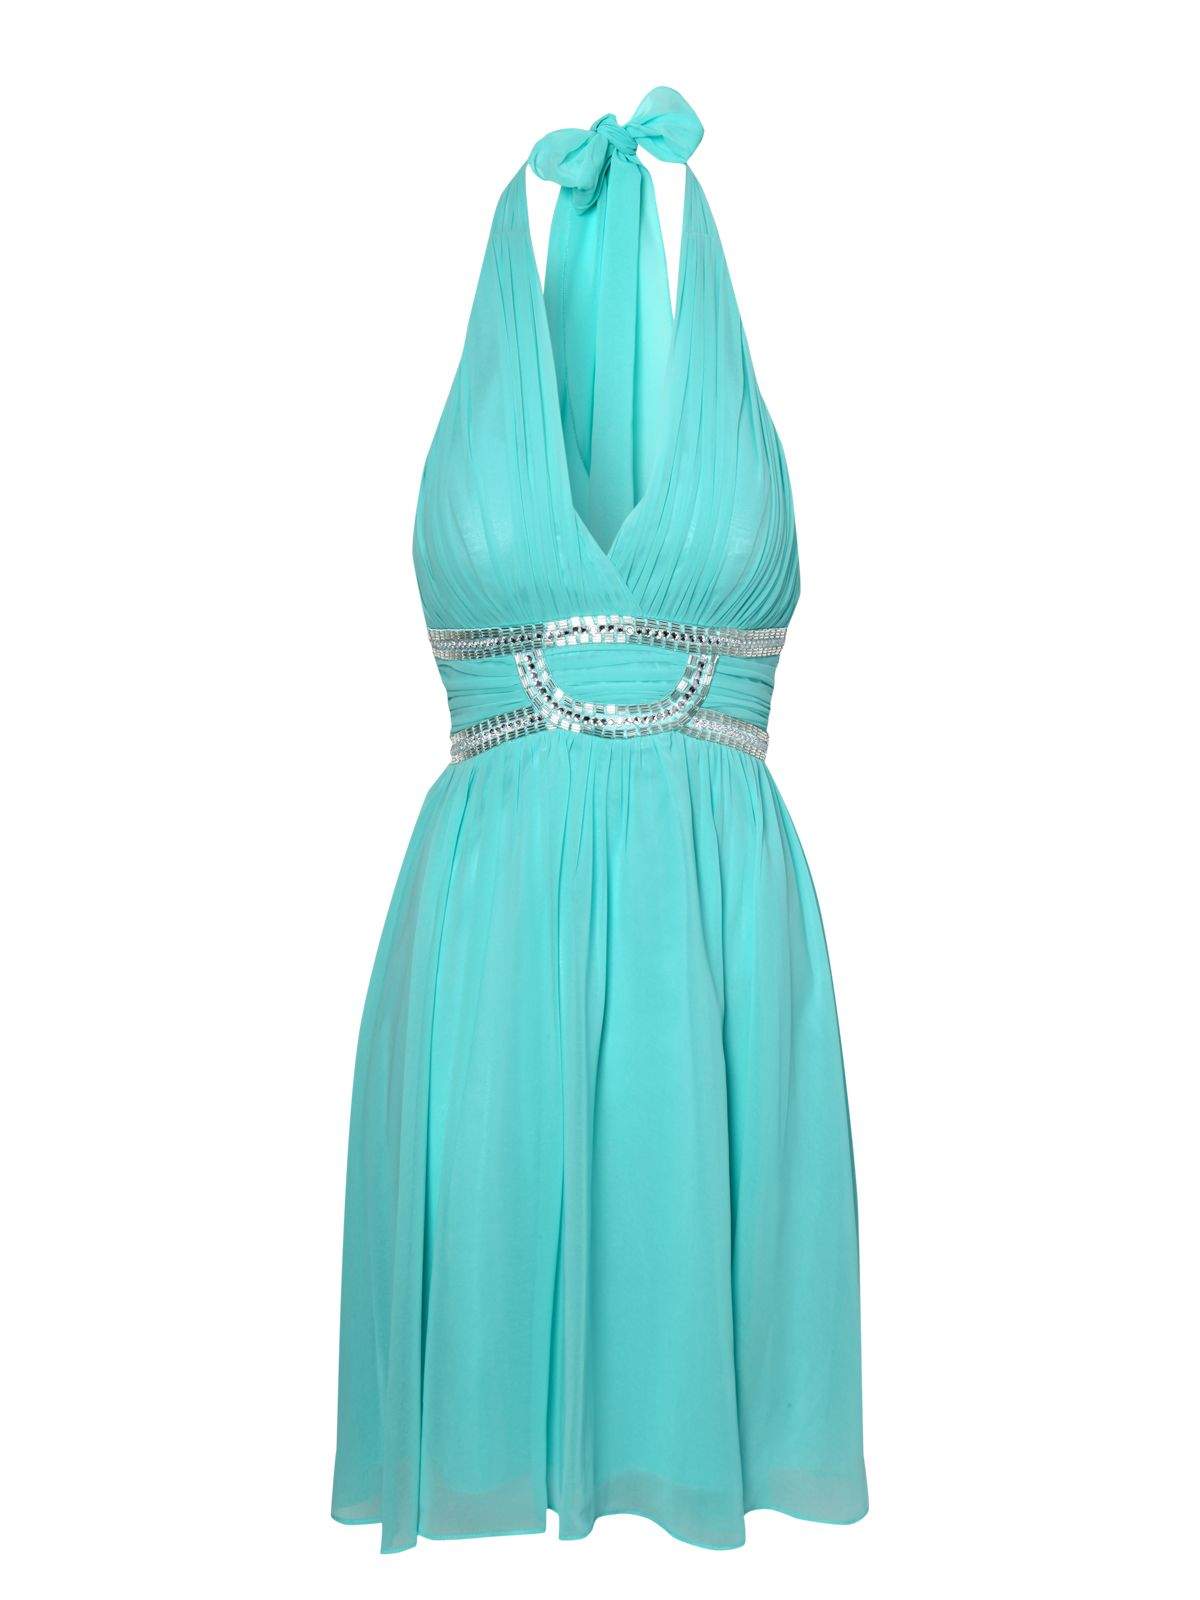 Halter Neck Embellished Prom Dress